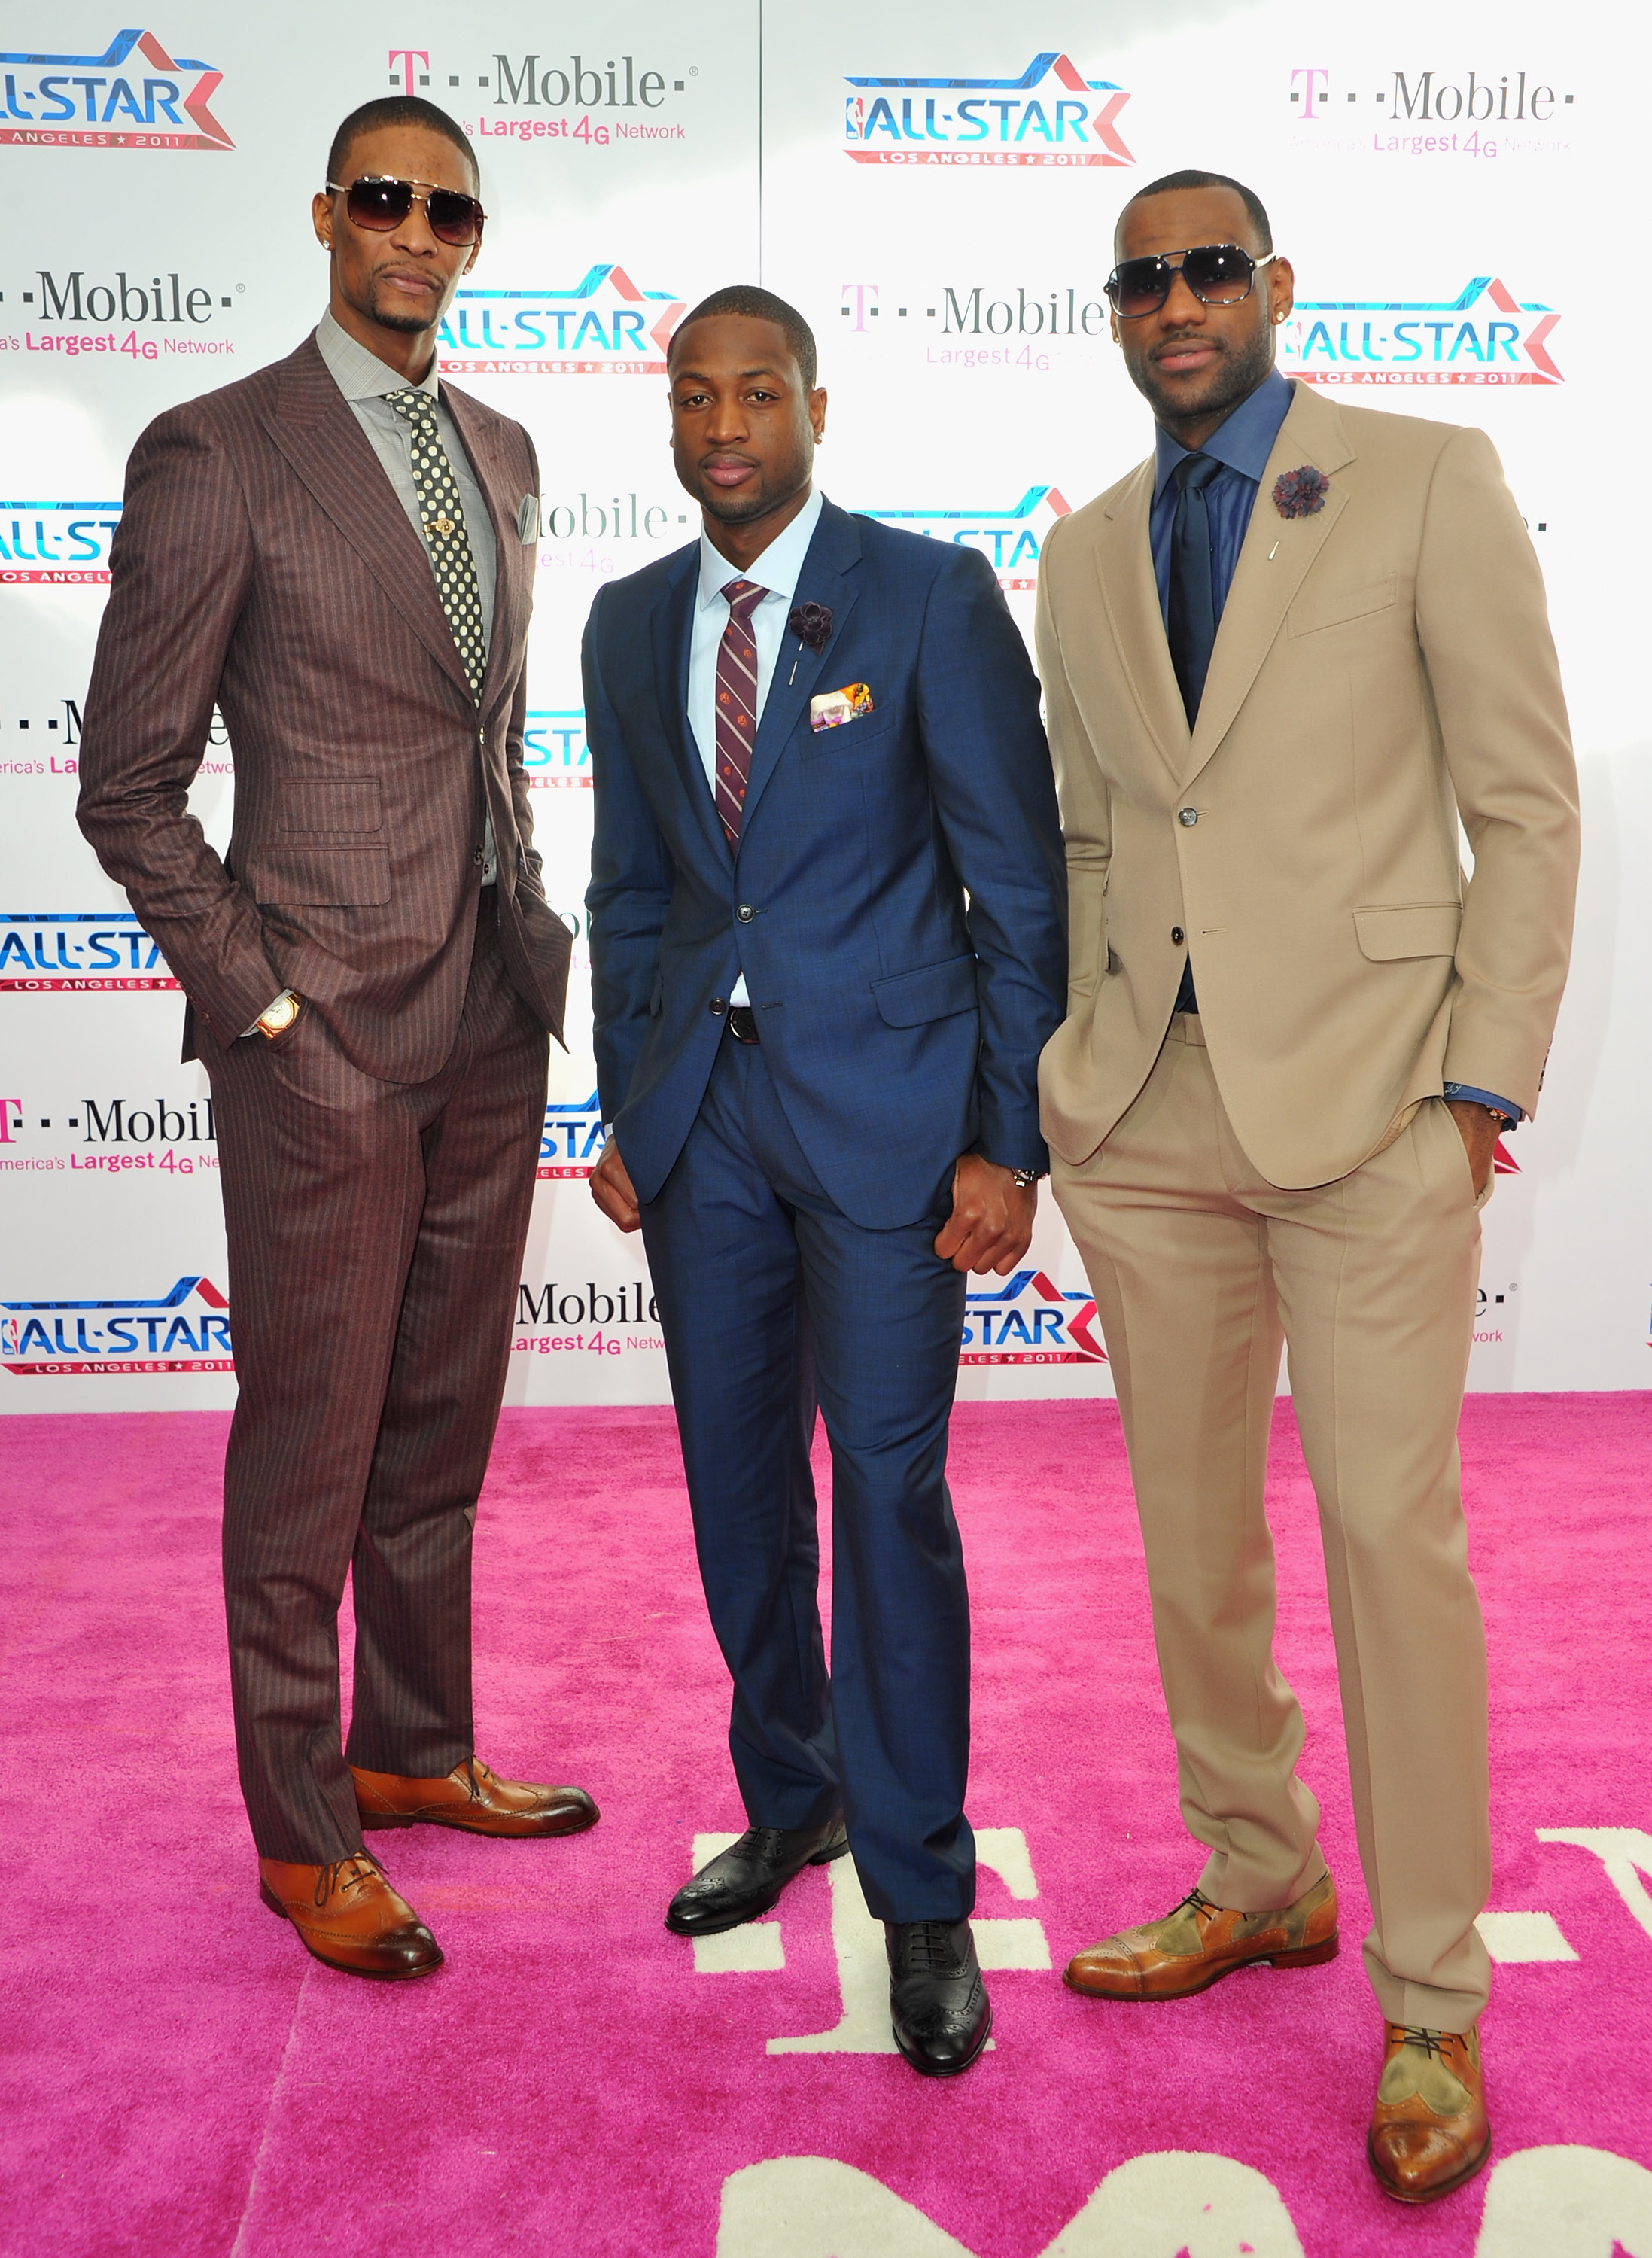 LOS ANGELES, CA - FEBRUARY 20:  NBA players Chris Bosh, Dwayne Wade and LeBron James arrive to the T-Mobile Magenta Carpet at the 2011 NBA All-Star Game on February 20, 2011 in Los Angeles, California.  (Photo by Alberto E. Rodriguez/Getty Images)